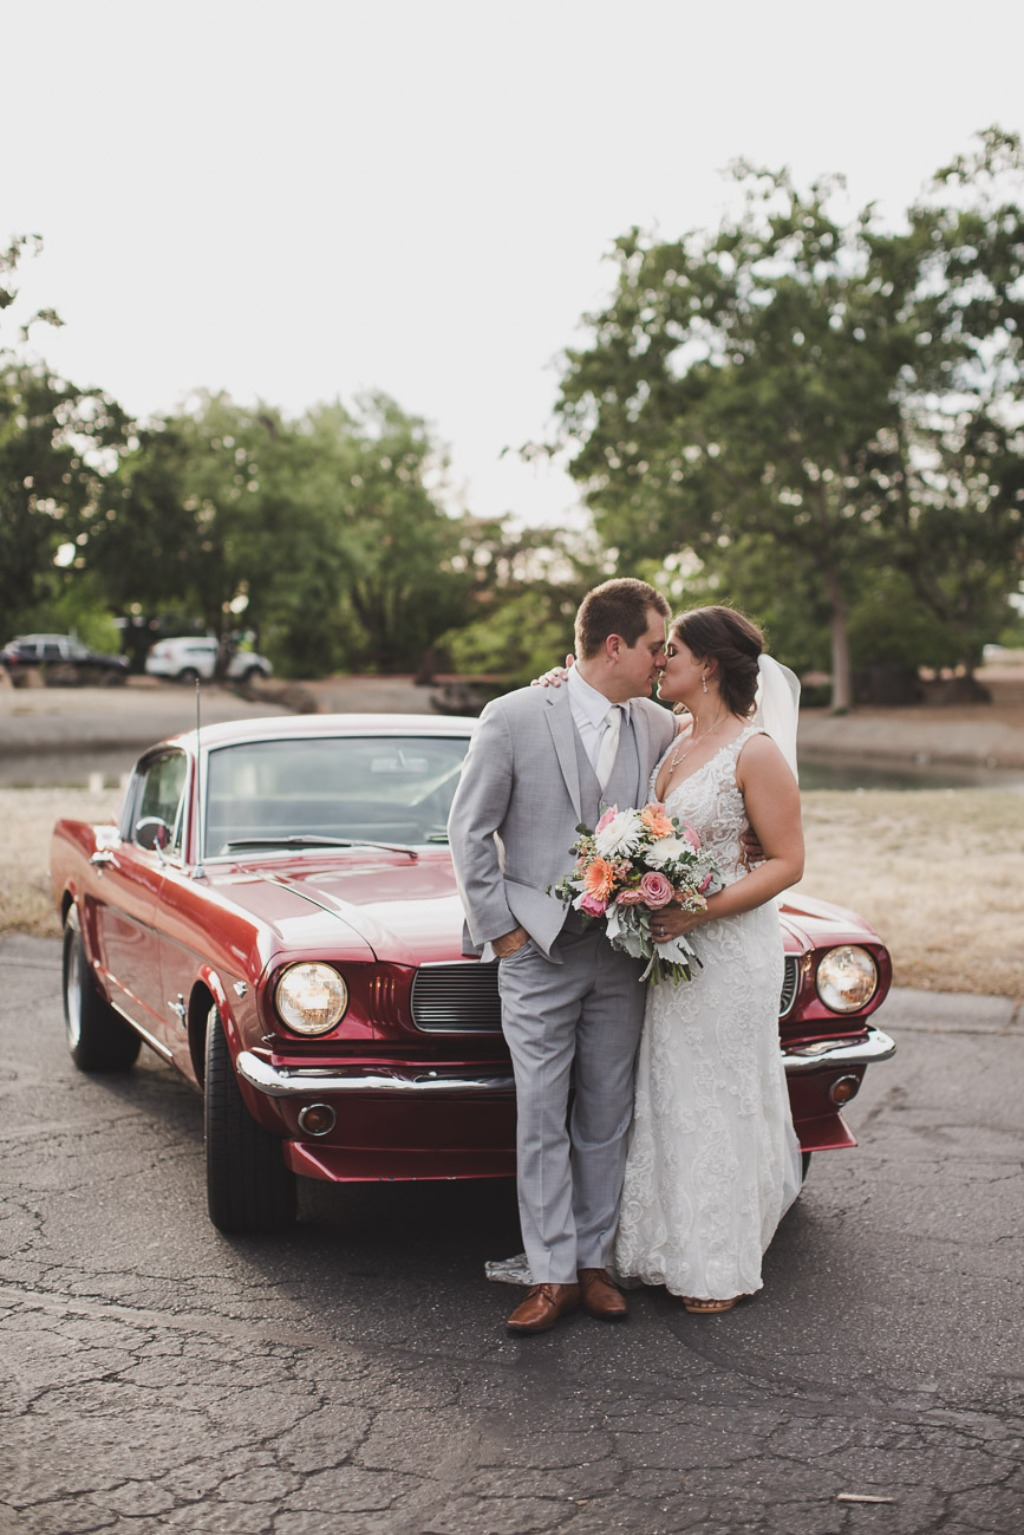 Love by this Mustang! Wedding car getaways and sunset photos!